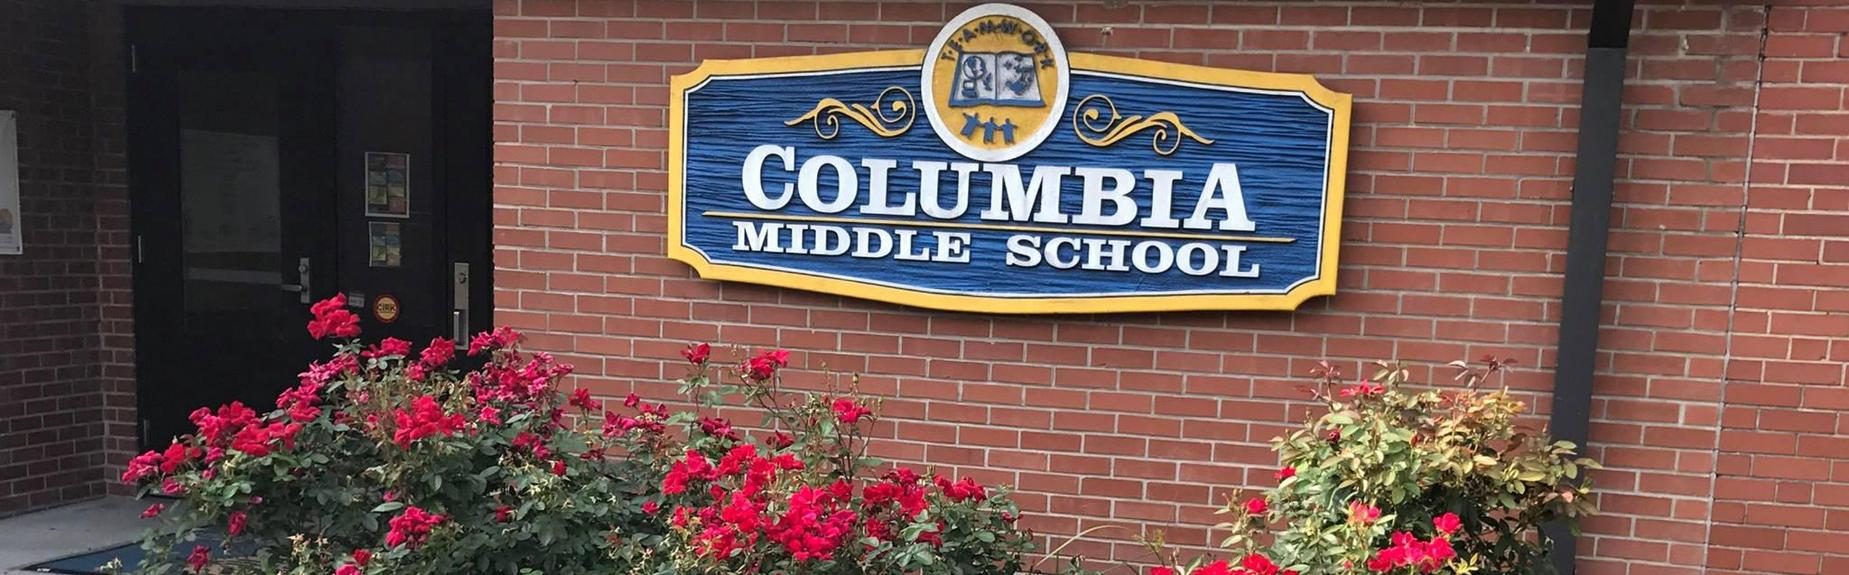 Columbia Middle School sign on wall outside and bushes